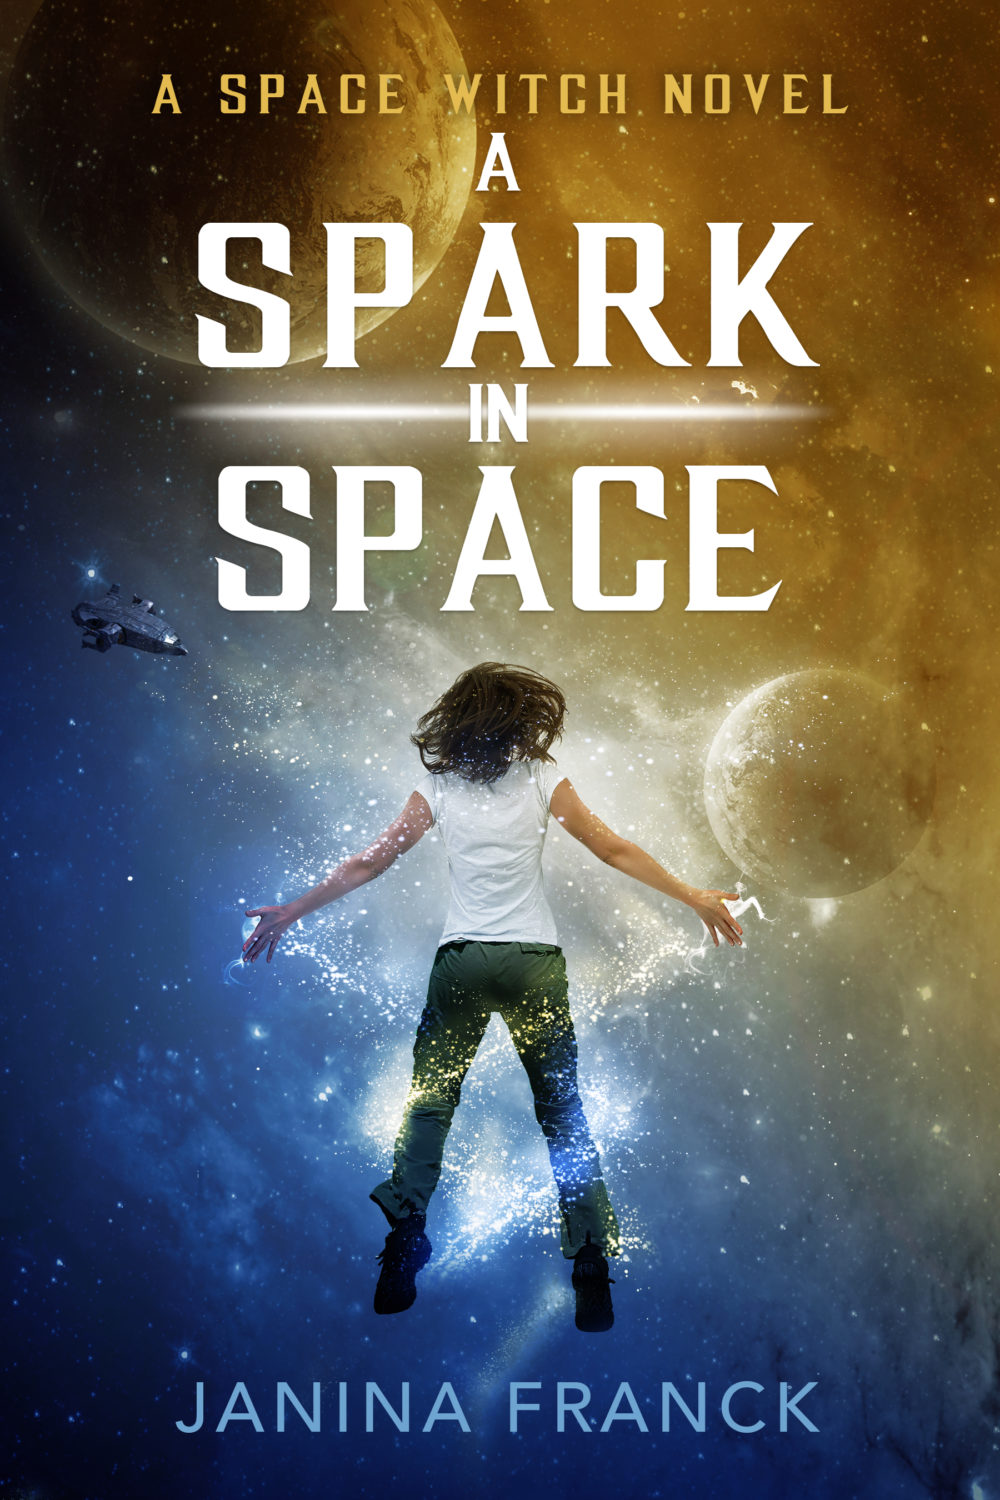 A Spark in Space by Janina Franck